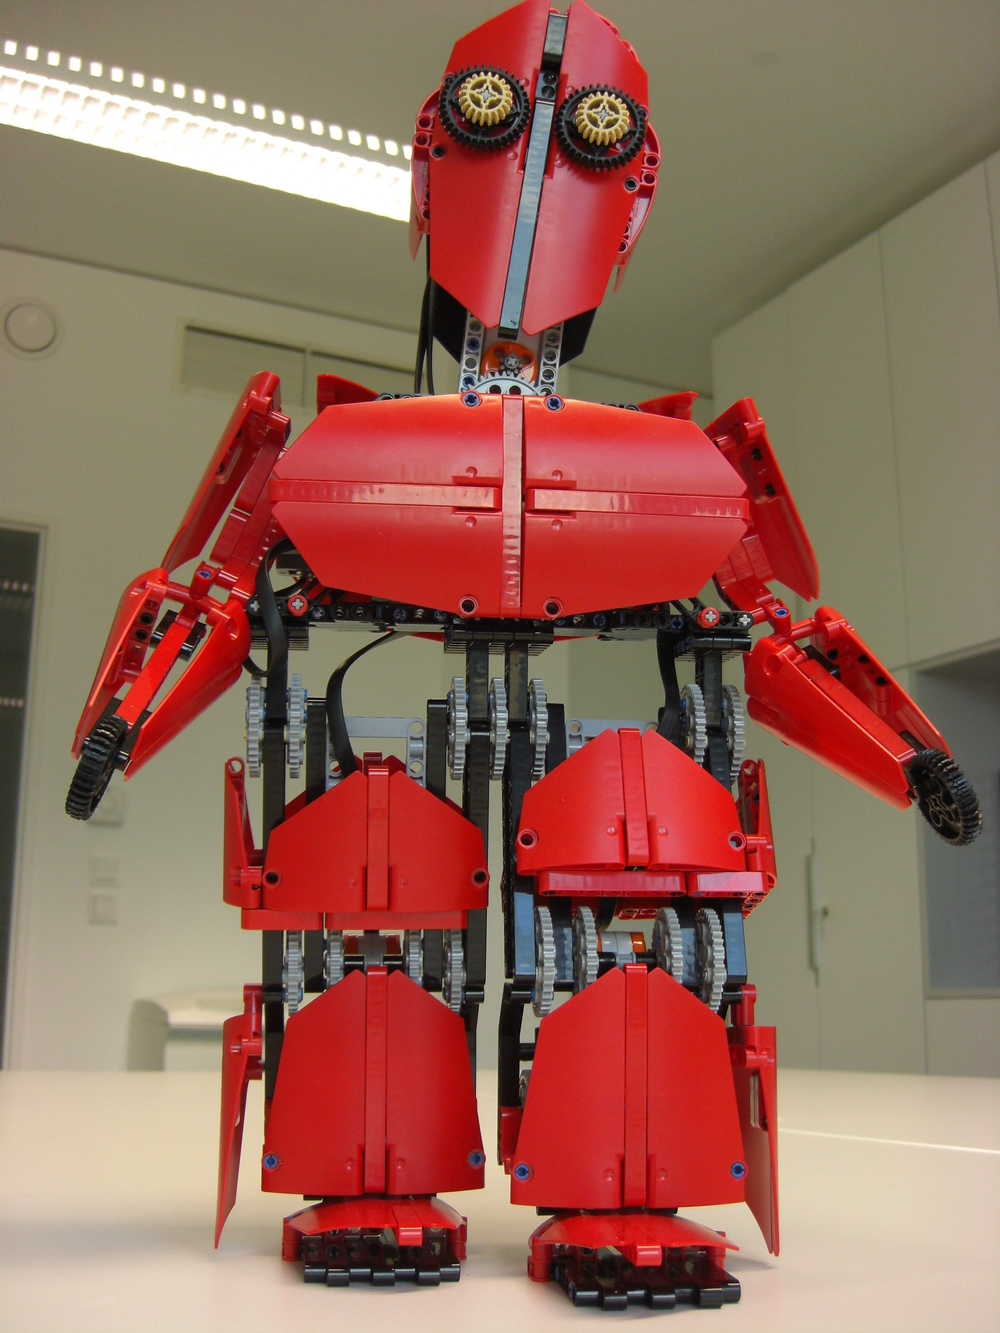 Red Robot v1 using NXT